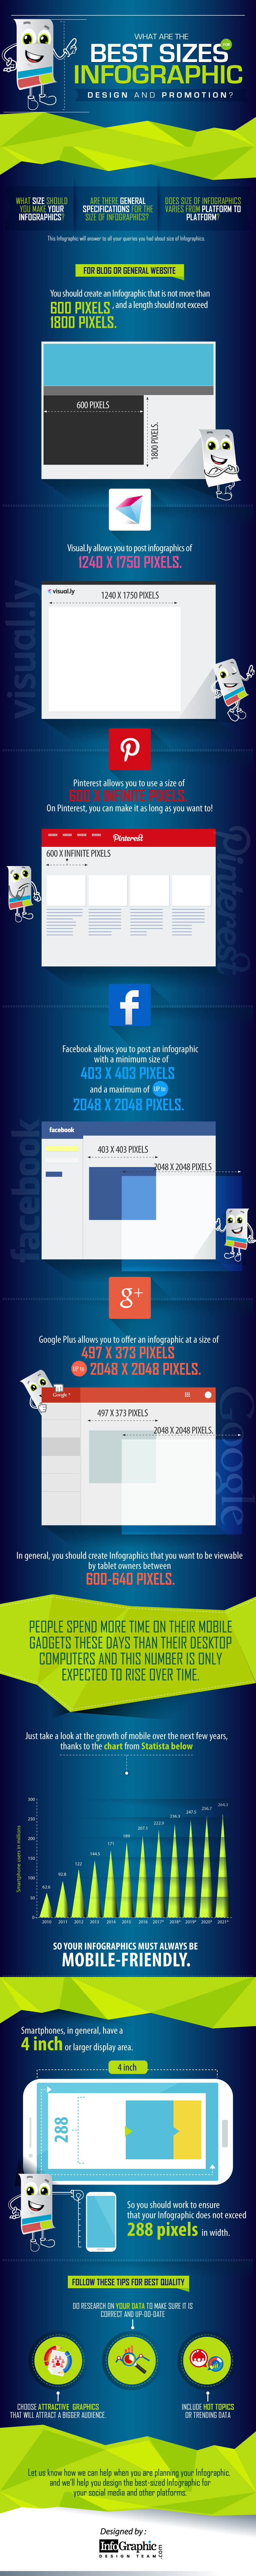 Best Sizes for Infographic Design and Promotion